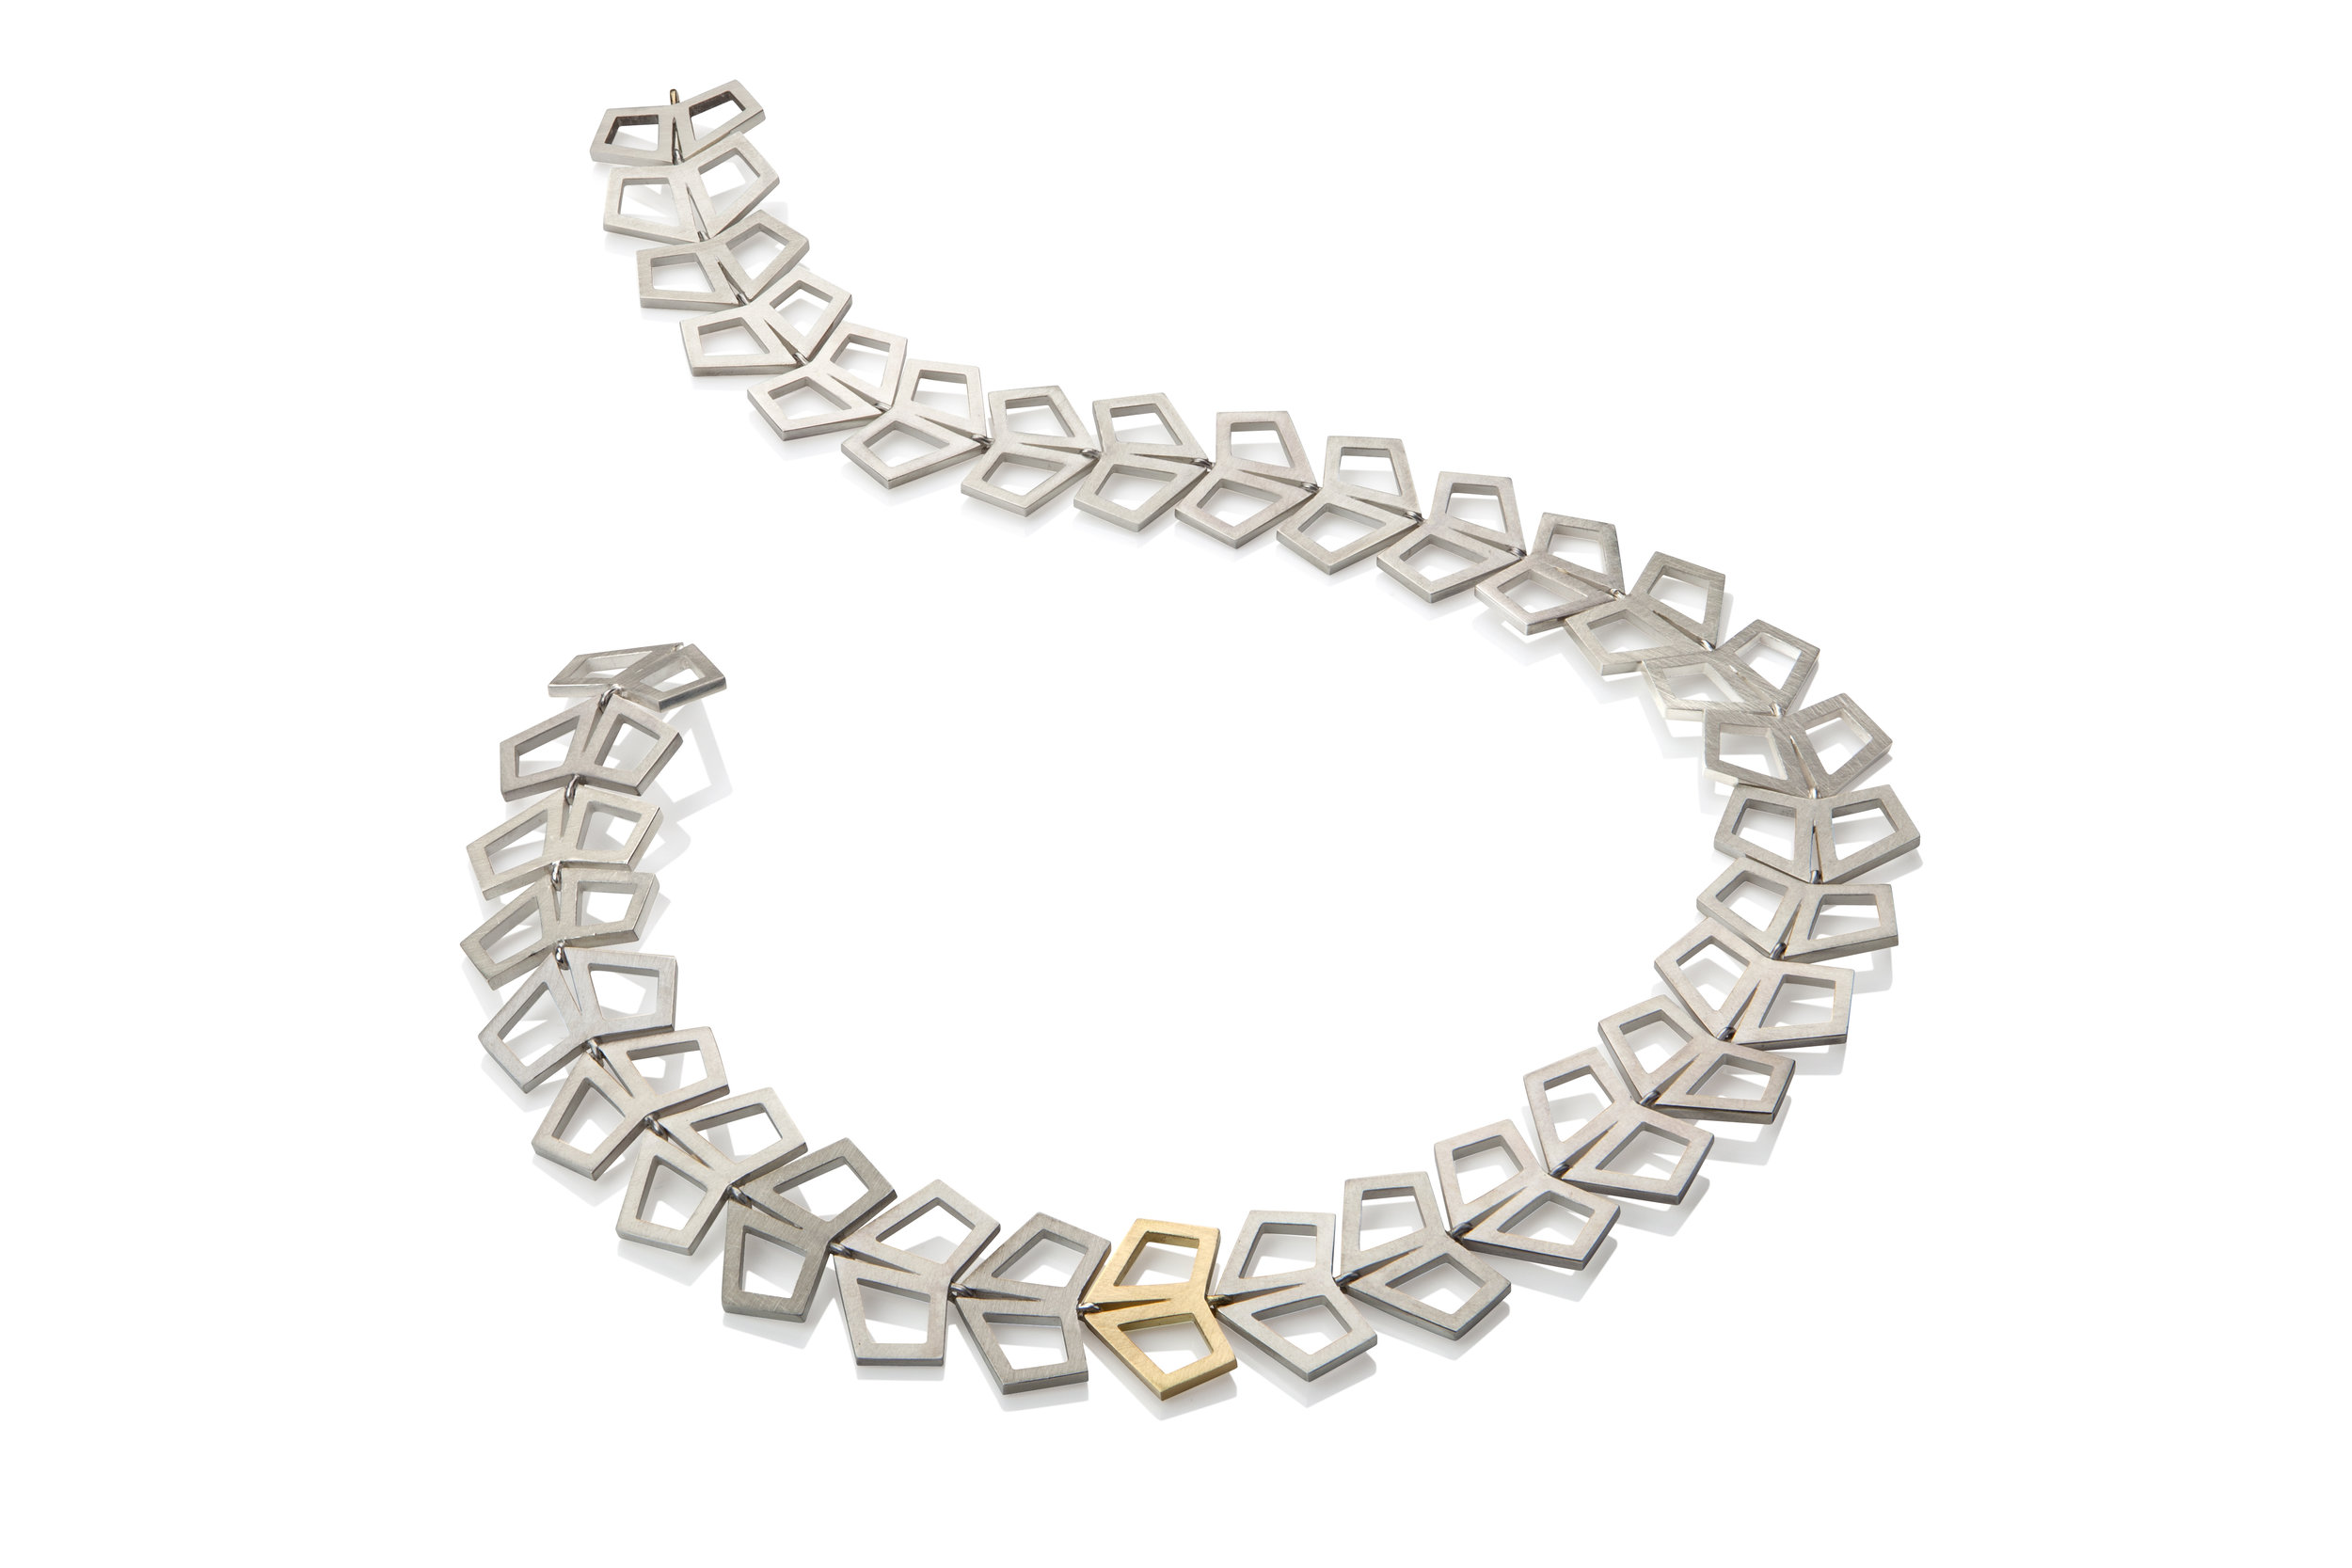 Silver arrow necklace with single gold link